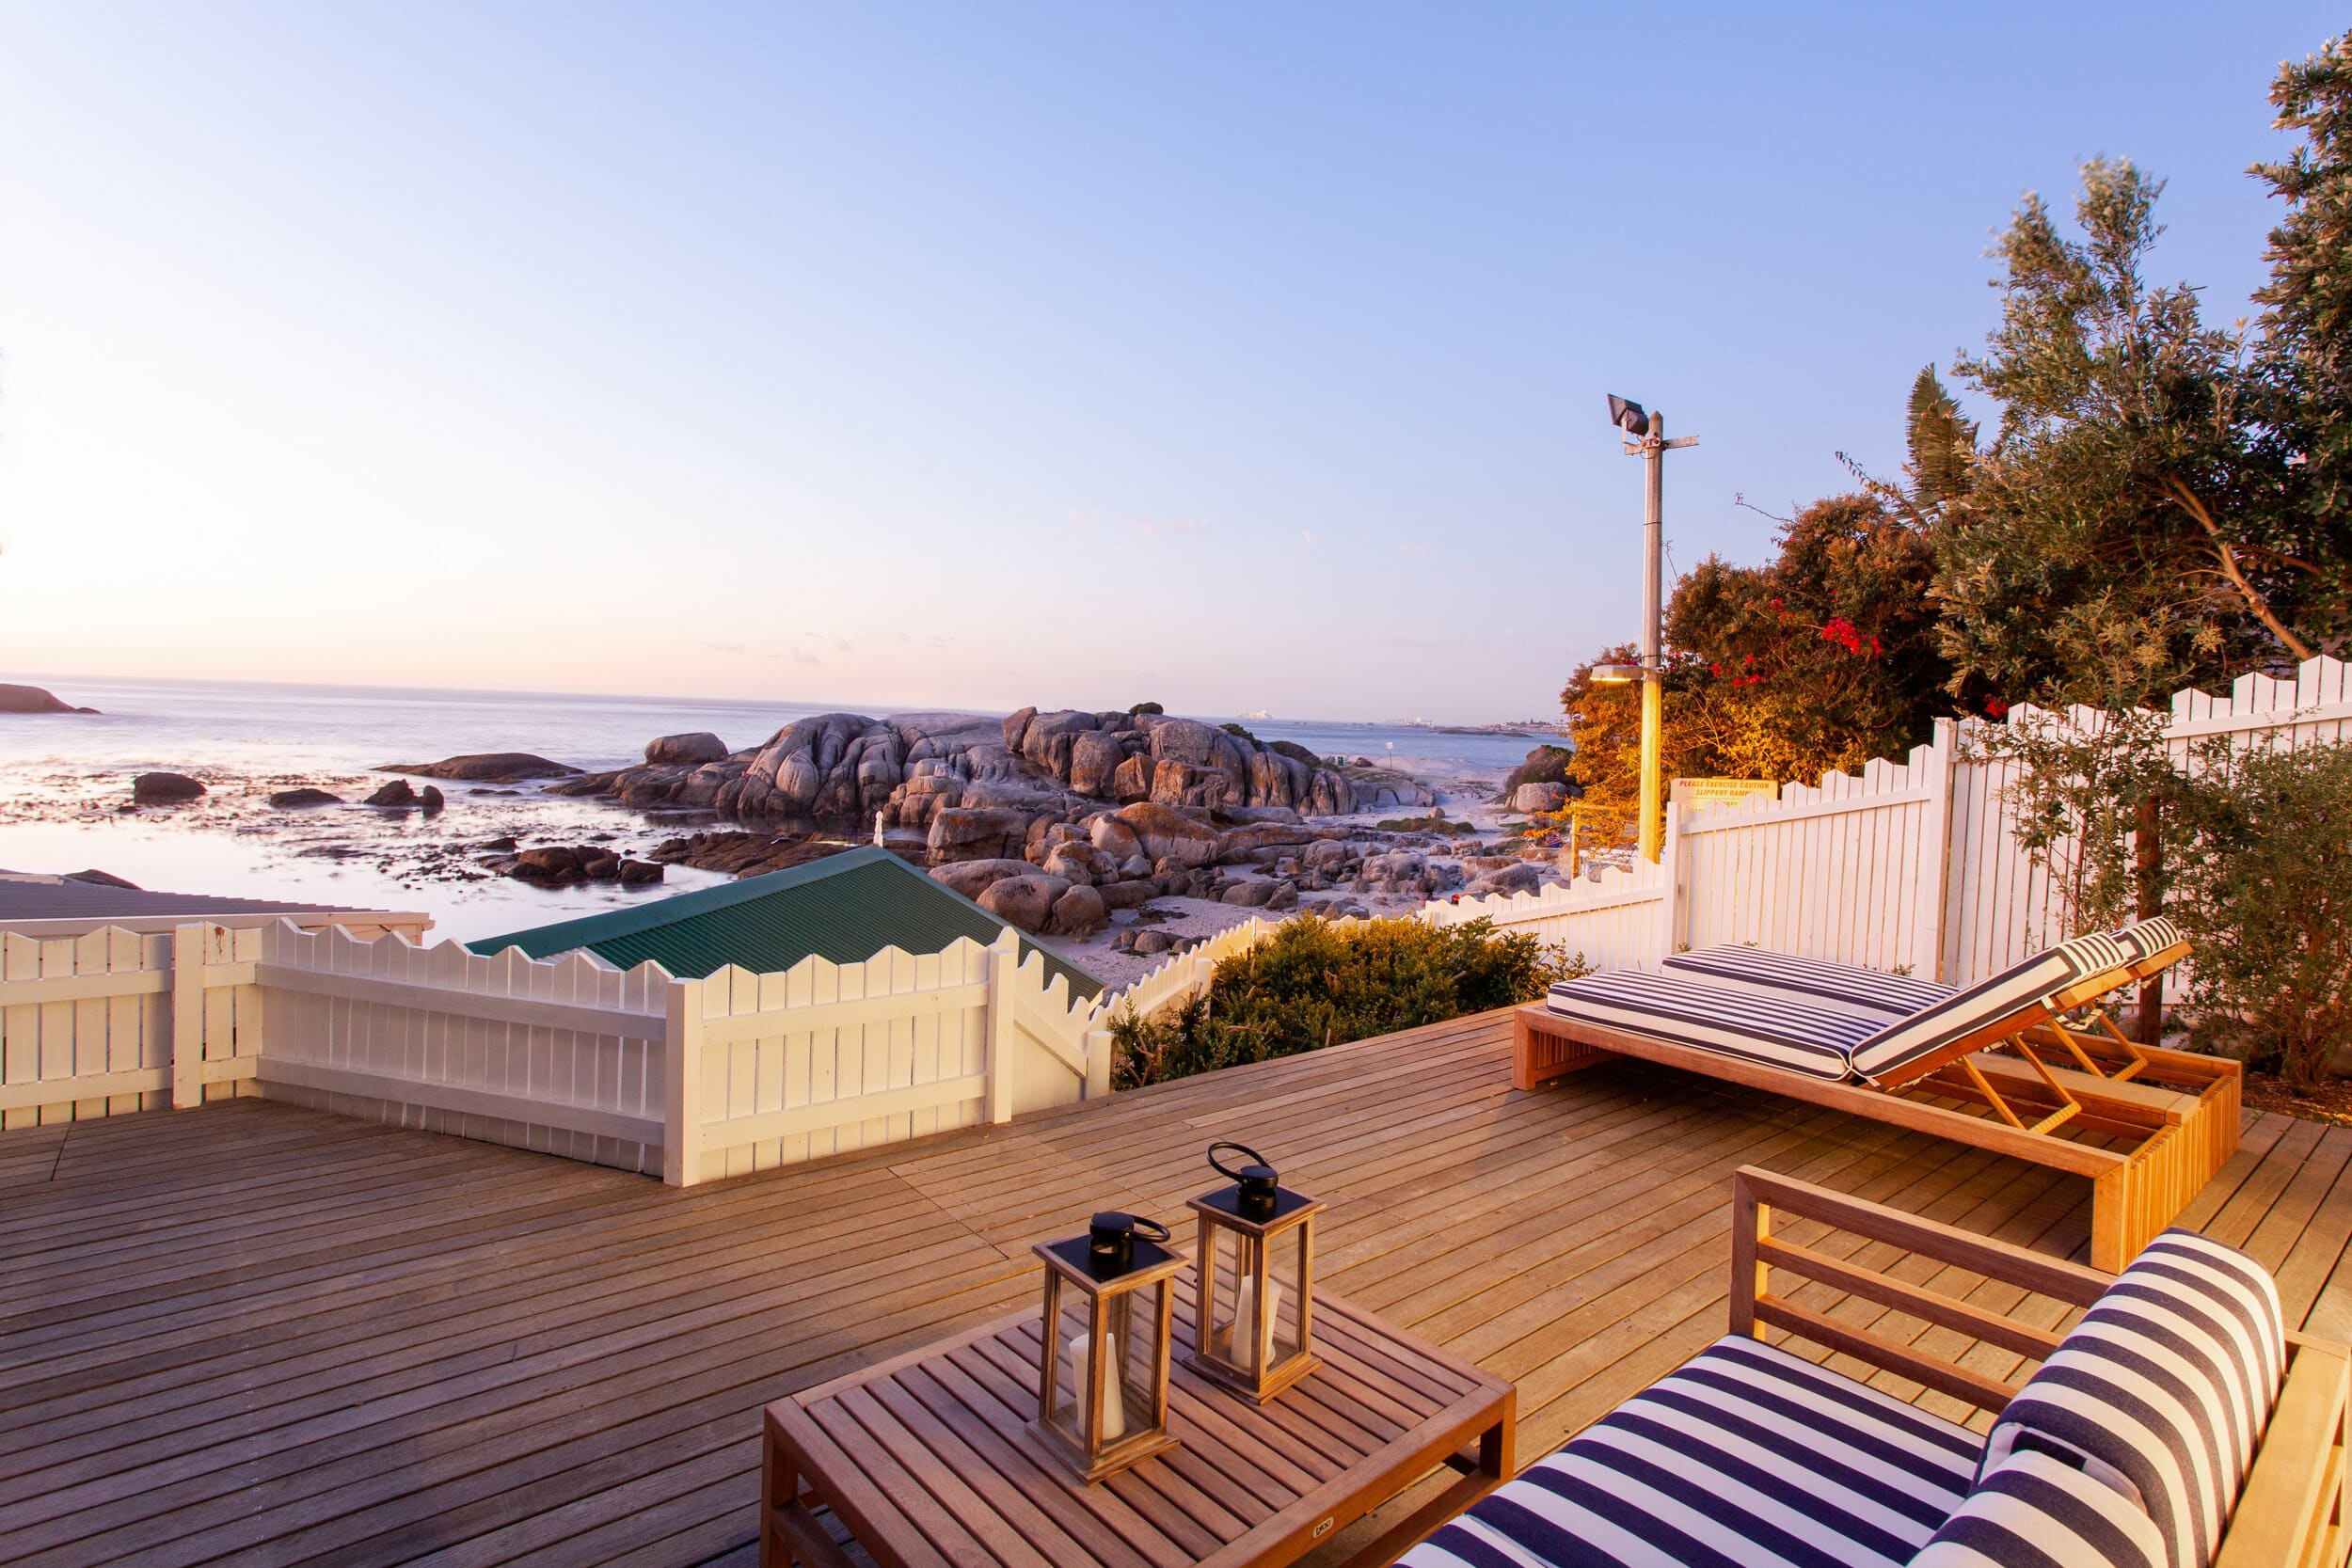 Bakoven beach house in South Africa